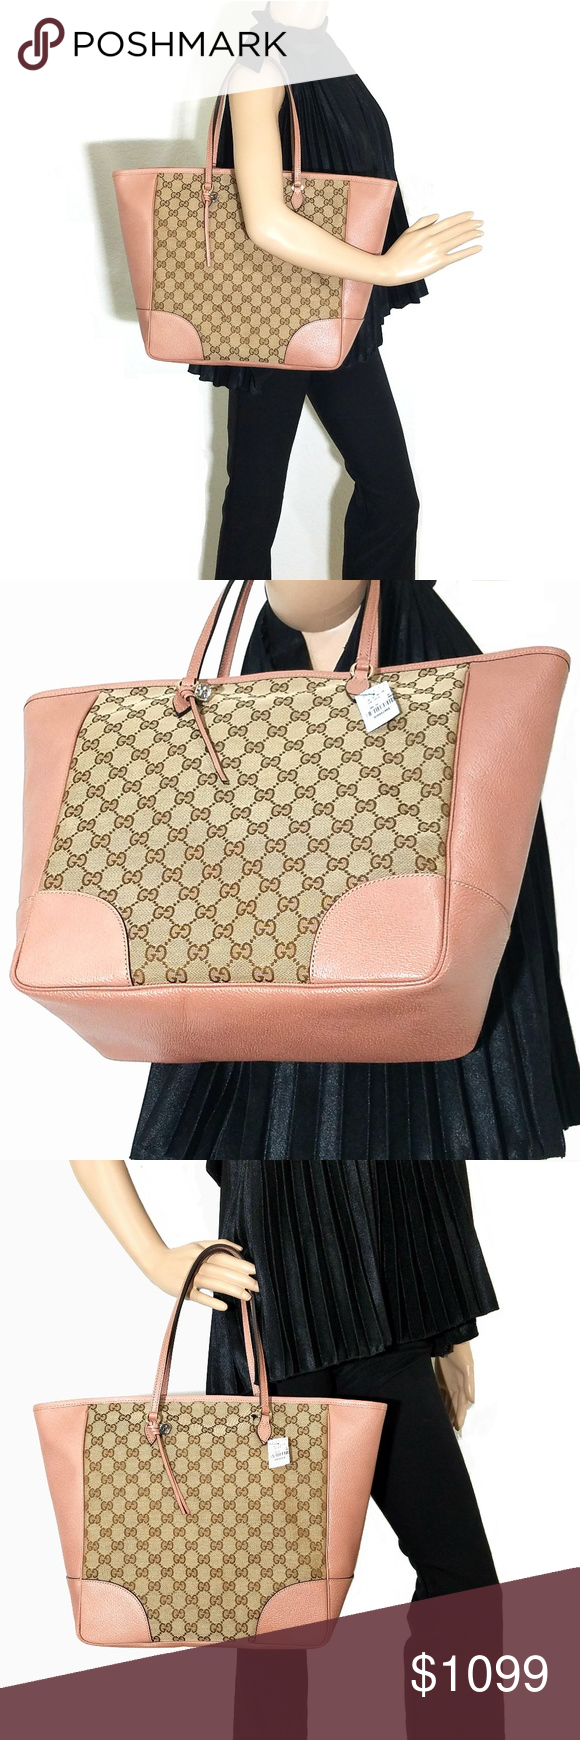 af3f51fbd276 NWT Gucci Bree Original GG Canvas Tote ***100% GUARANTEED AUTHENTIC OR YOUR